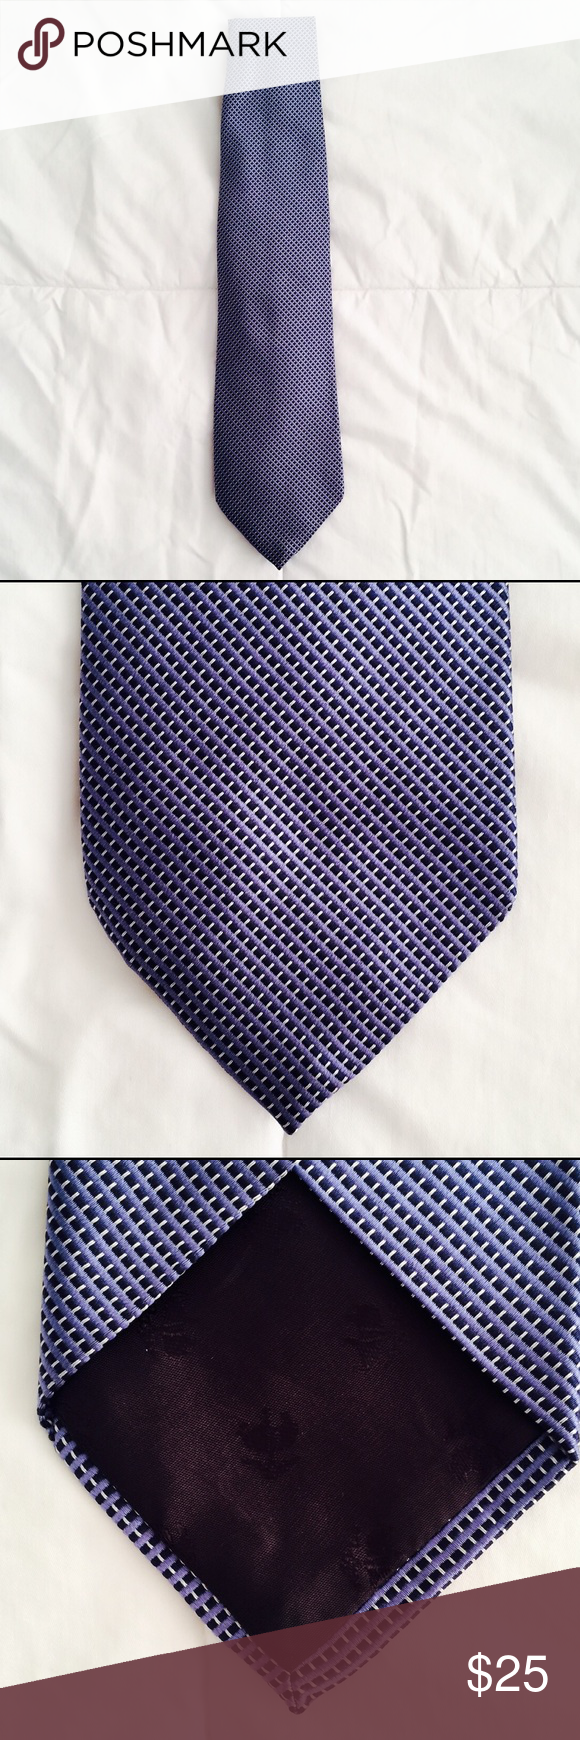 NEW 346 Brooks Brothers Pure Silk Tie NEW. Pure silk. Made in USA. Woven in Italy. Brooks Brothers Accessories Ties